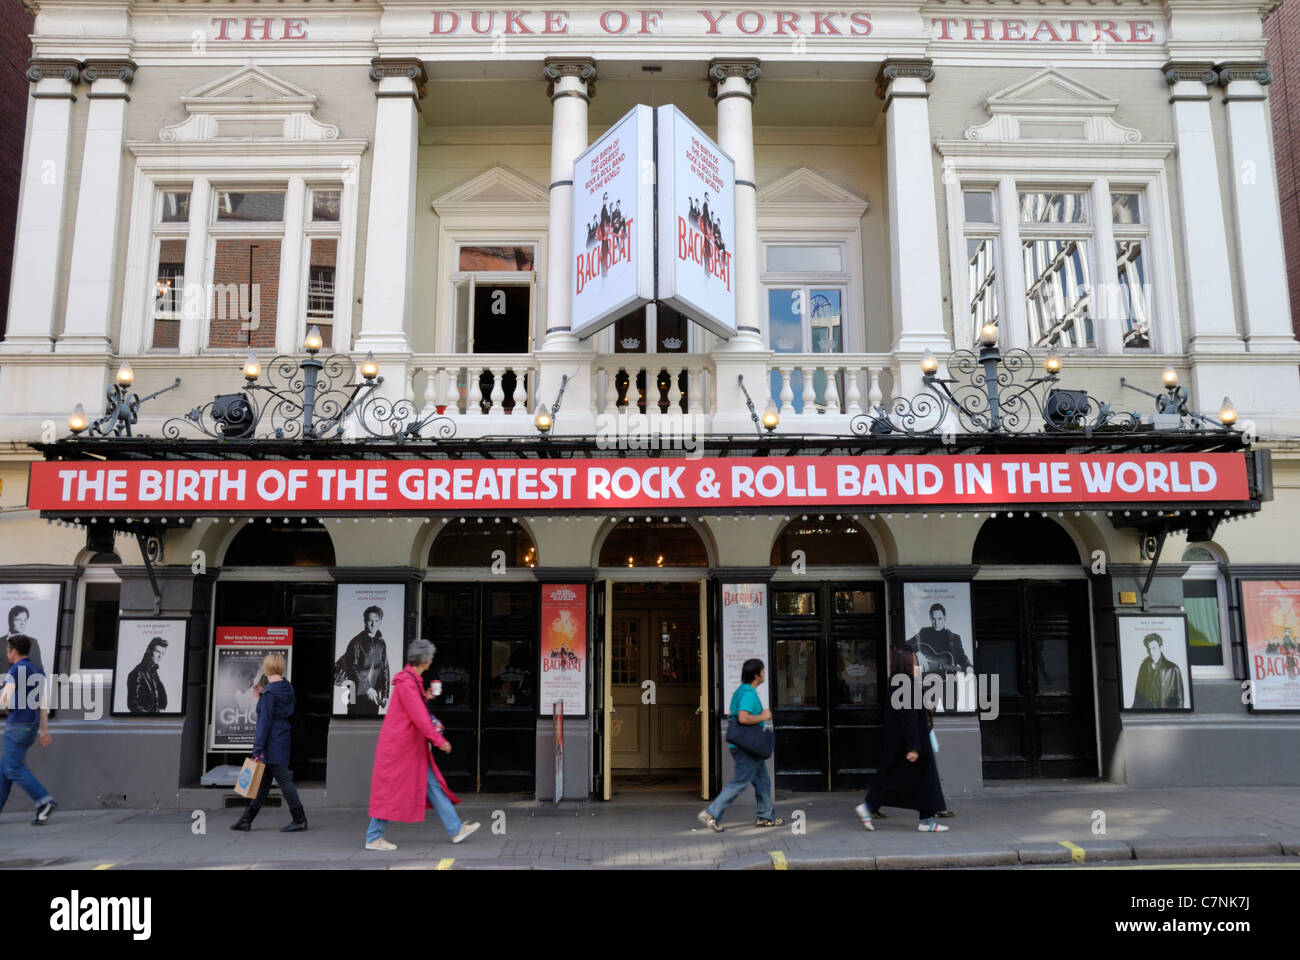 The Duke of York's Theatre London displaying an advert for the musical Backbeat about the Beatles' early days - Stock Image